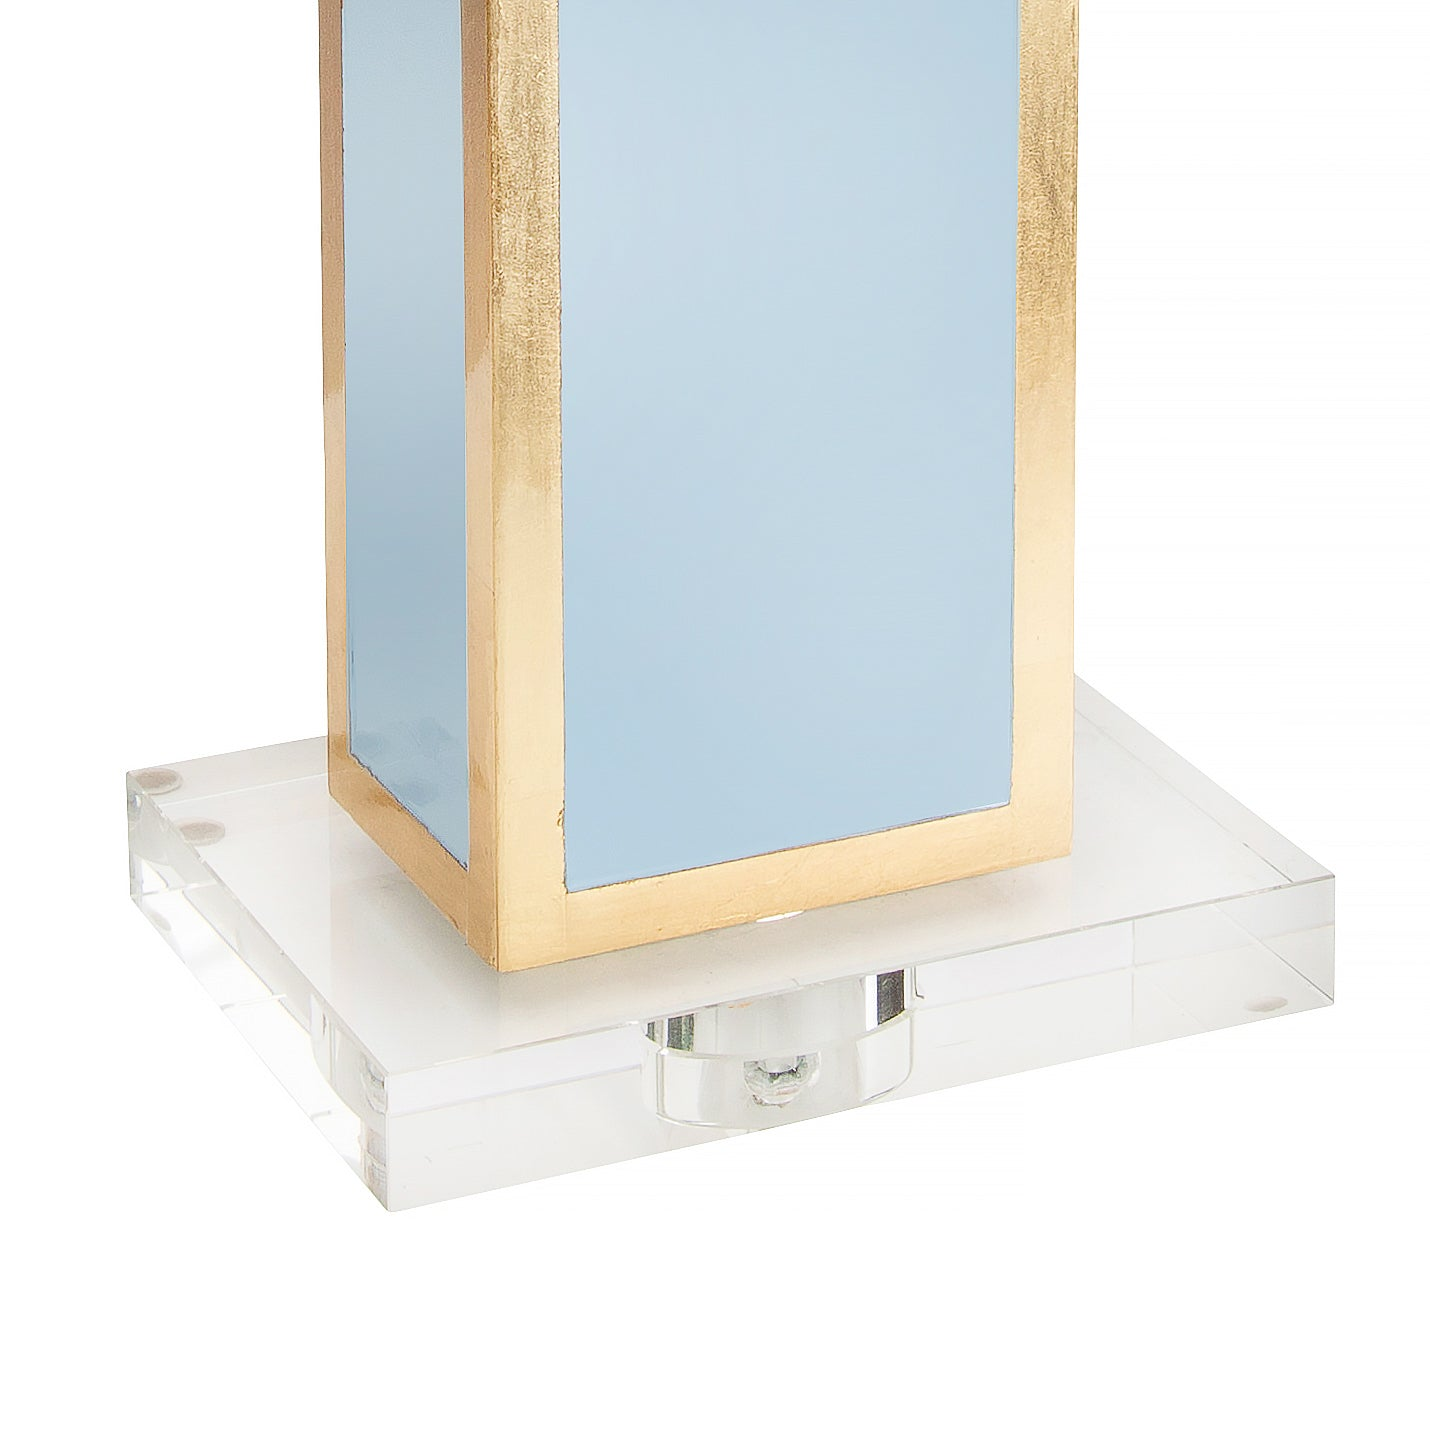 Blair Table Lamp, Robin Egg Blue - Couture Lamps